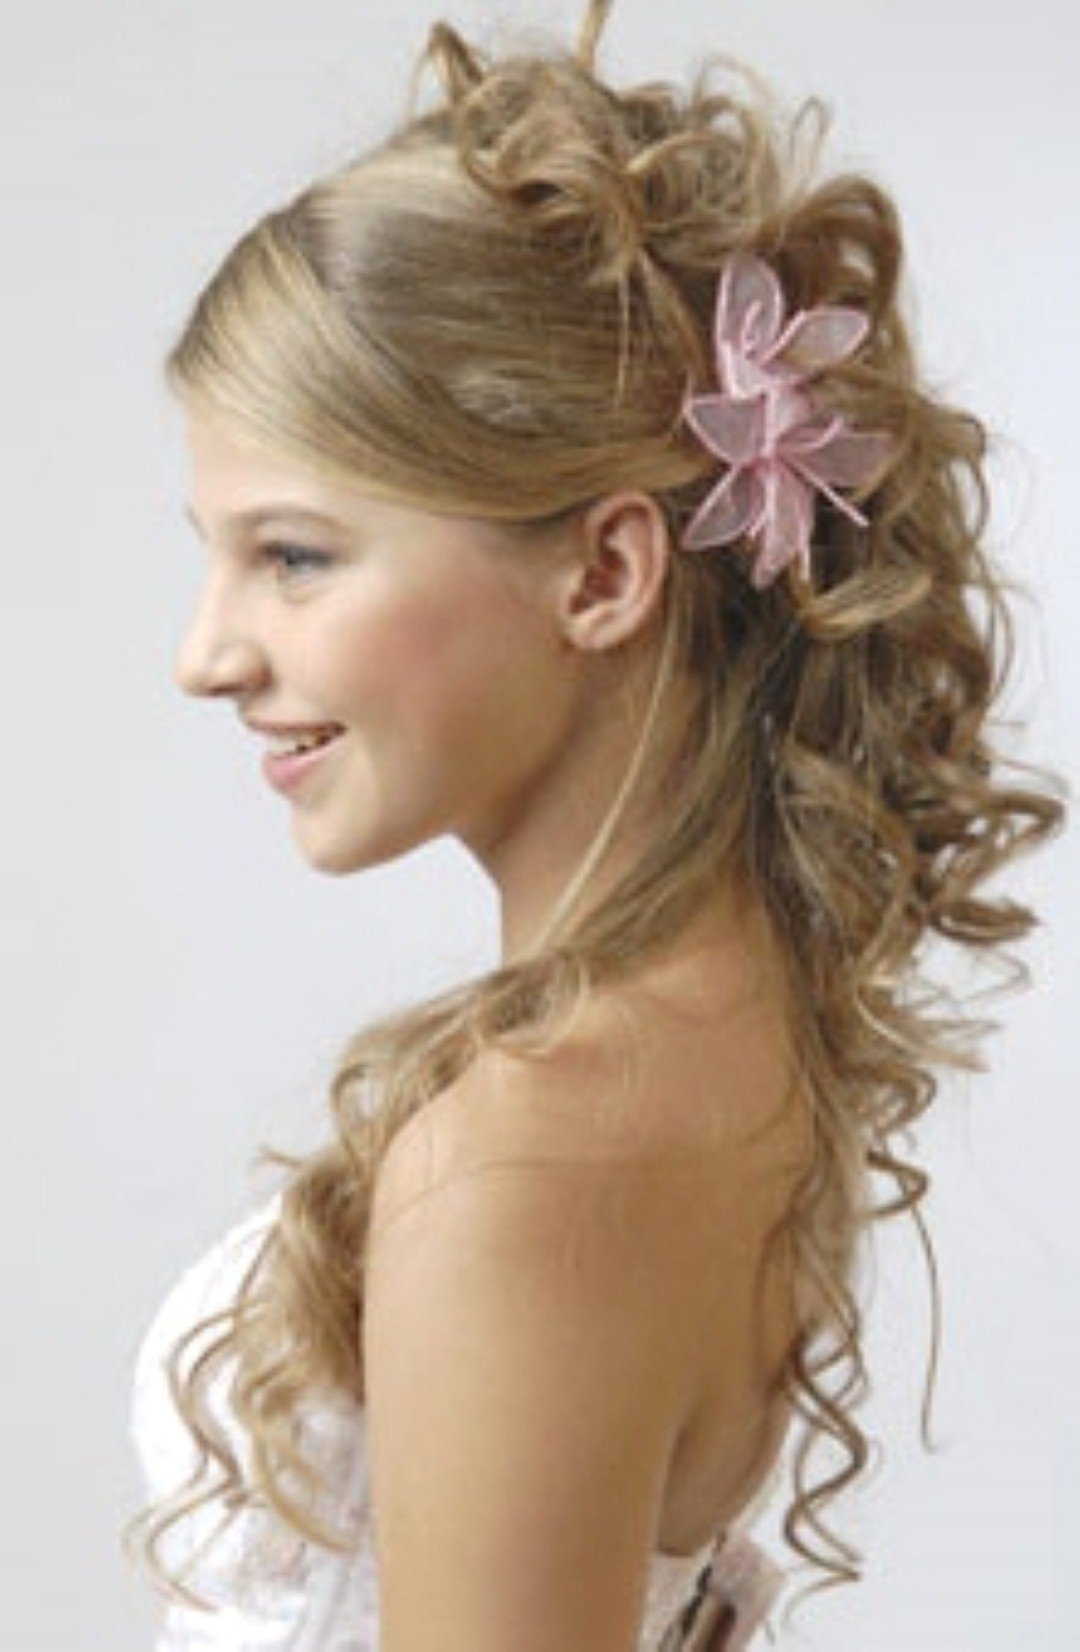 Hairstyle For Prom : Planning for the prom hairstyles night in 2014! Proms are the ...